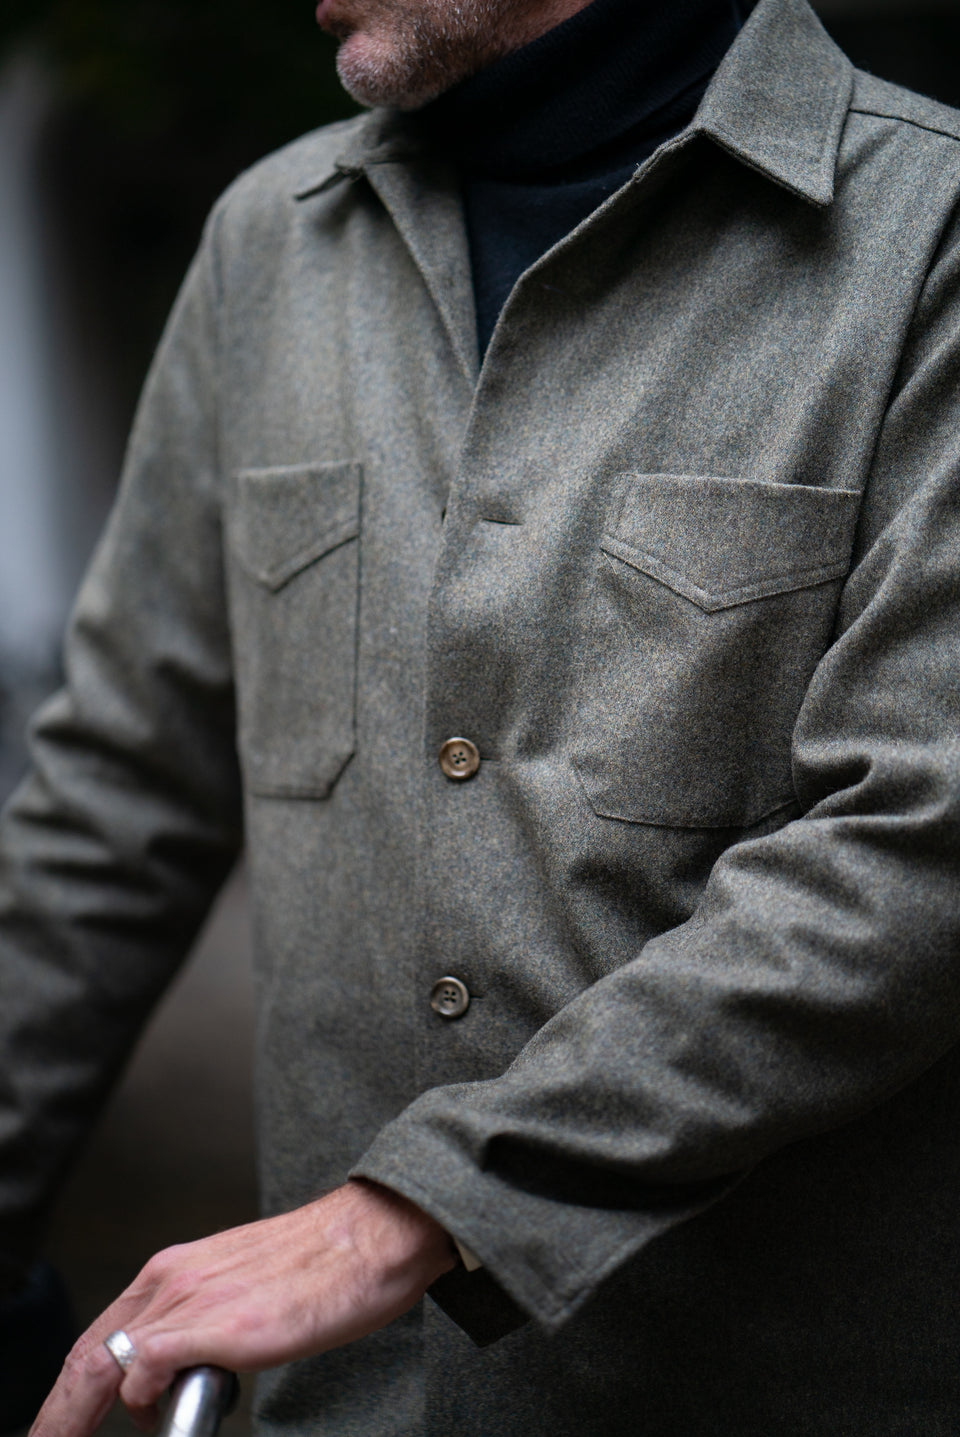 PML Overshirt - Fox Bros. 'Palazzi flannel' capsule